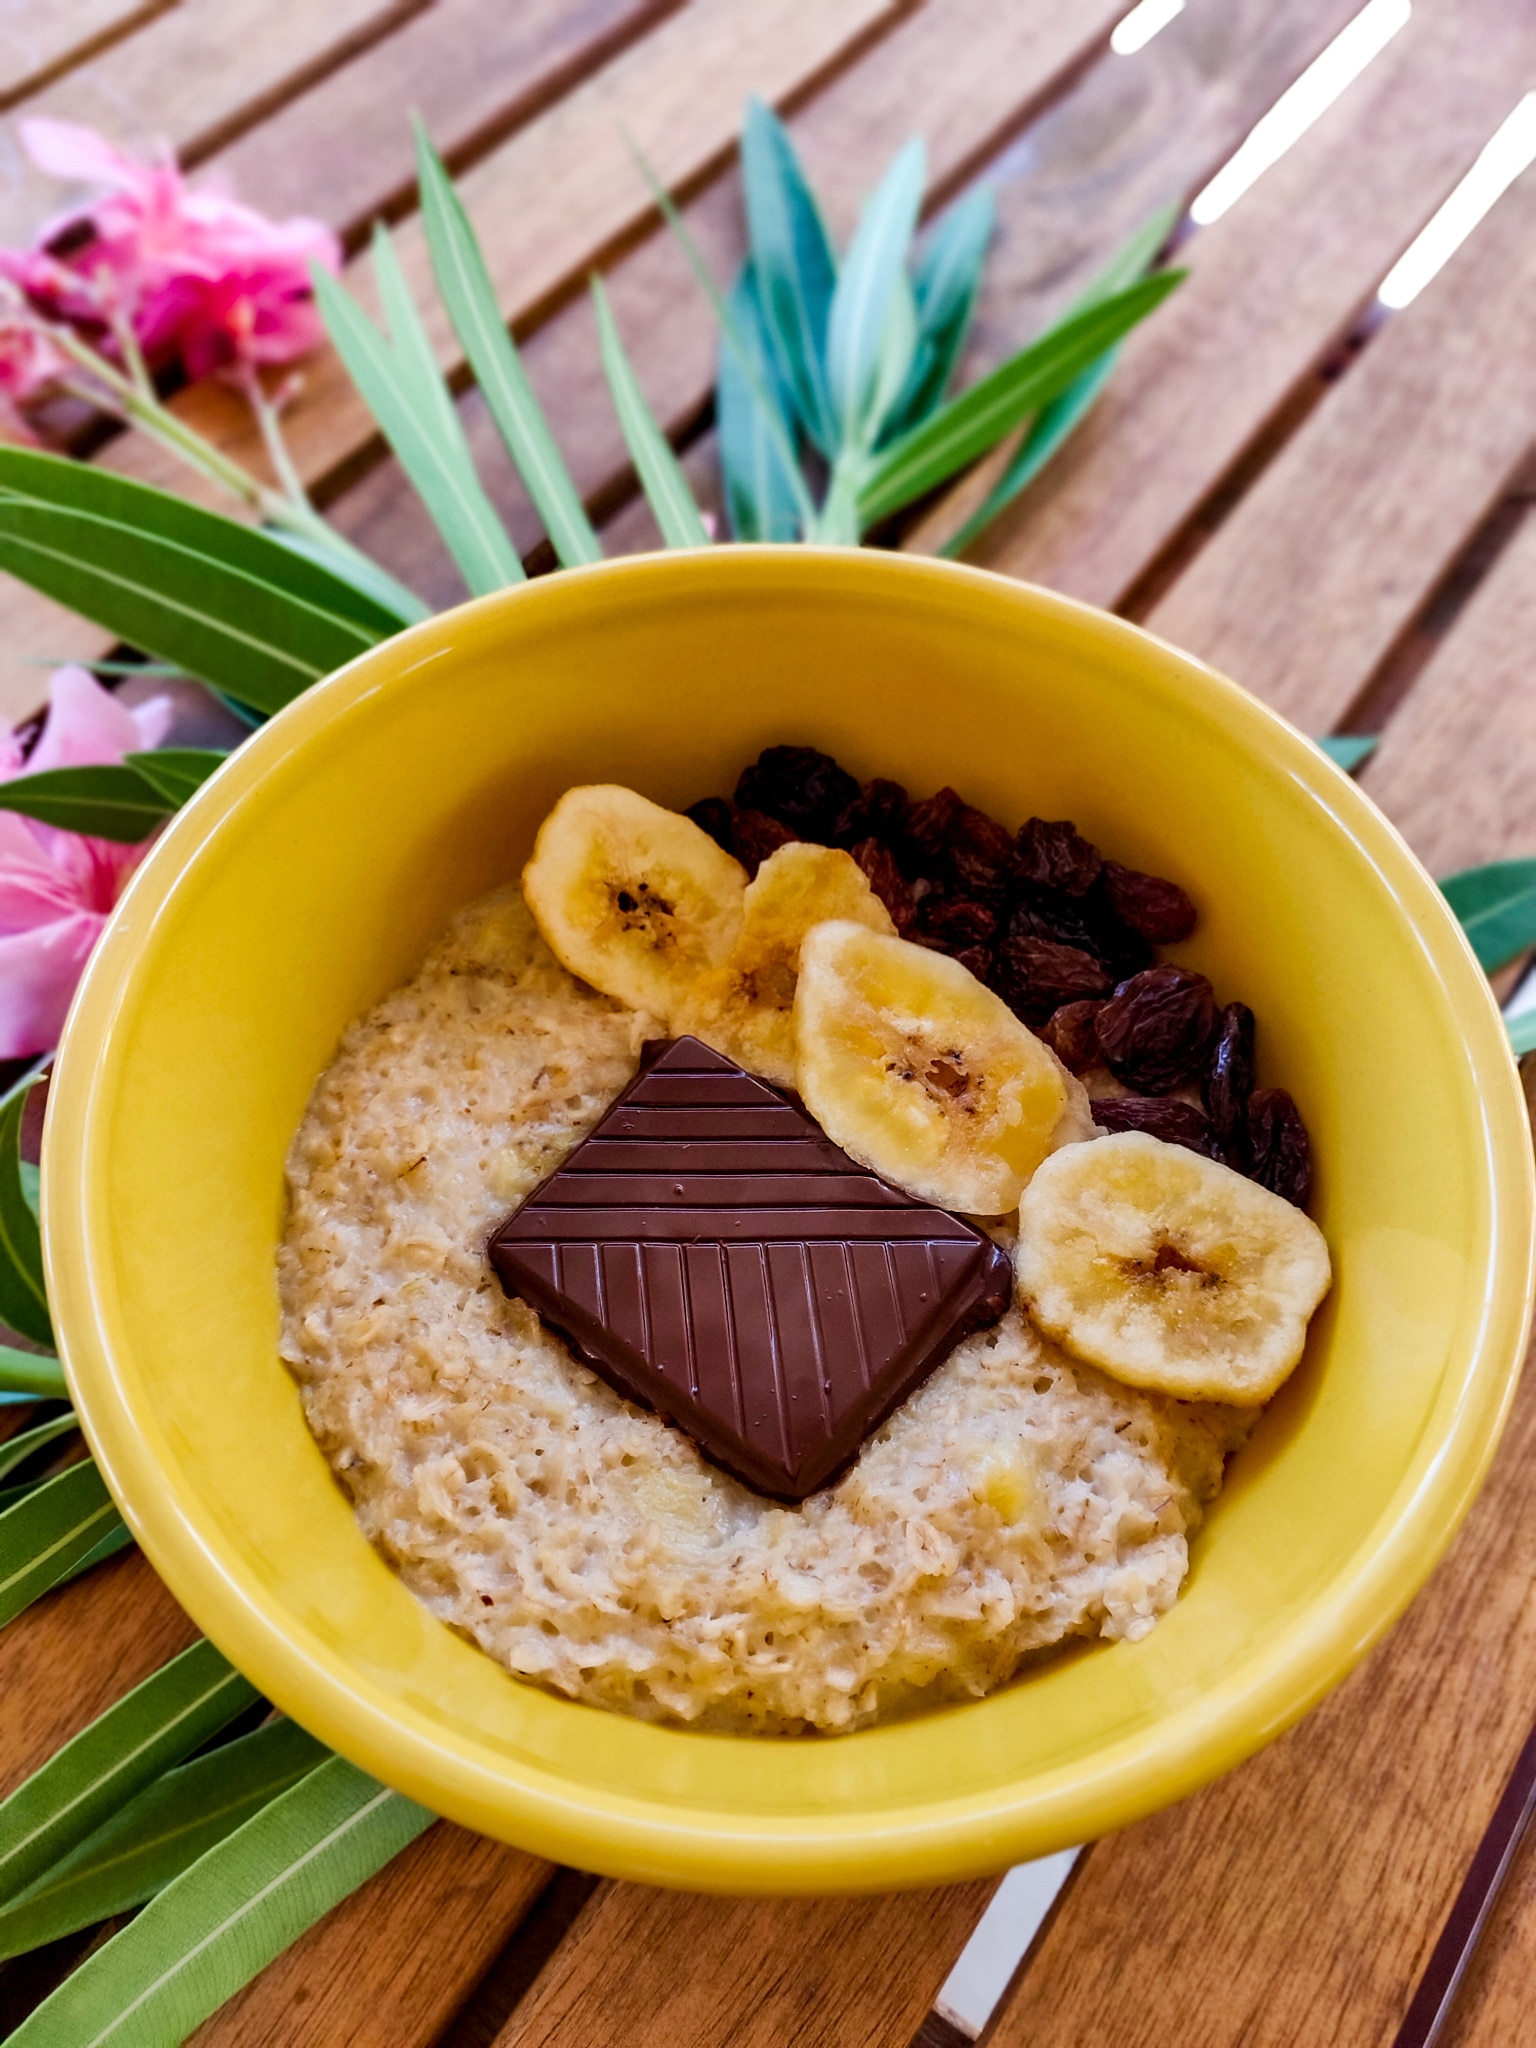 Mind and Beauty – Recette sucrée : Porridge à la banane